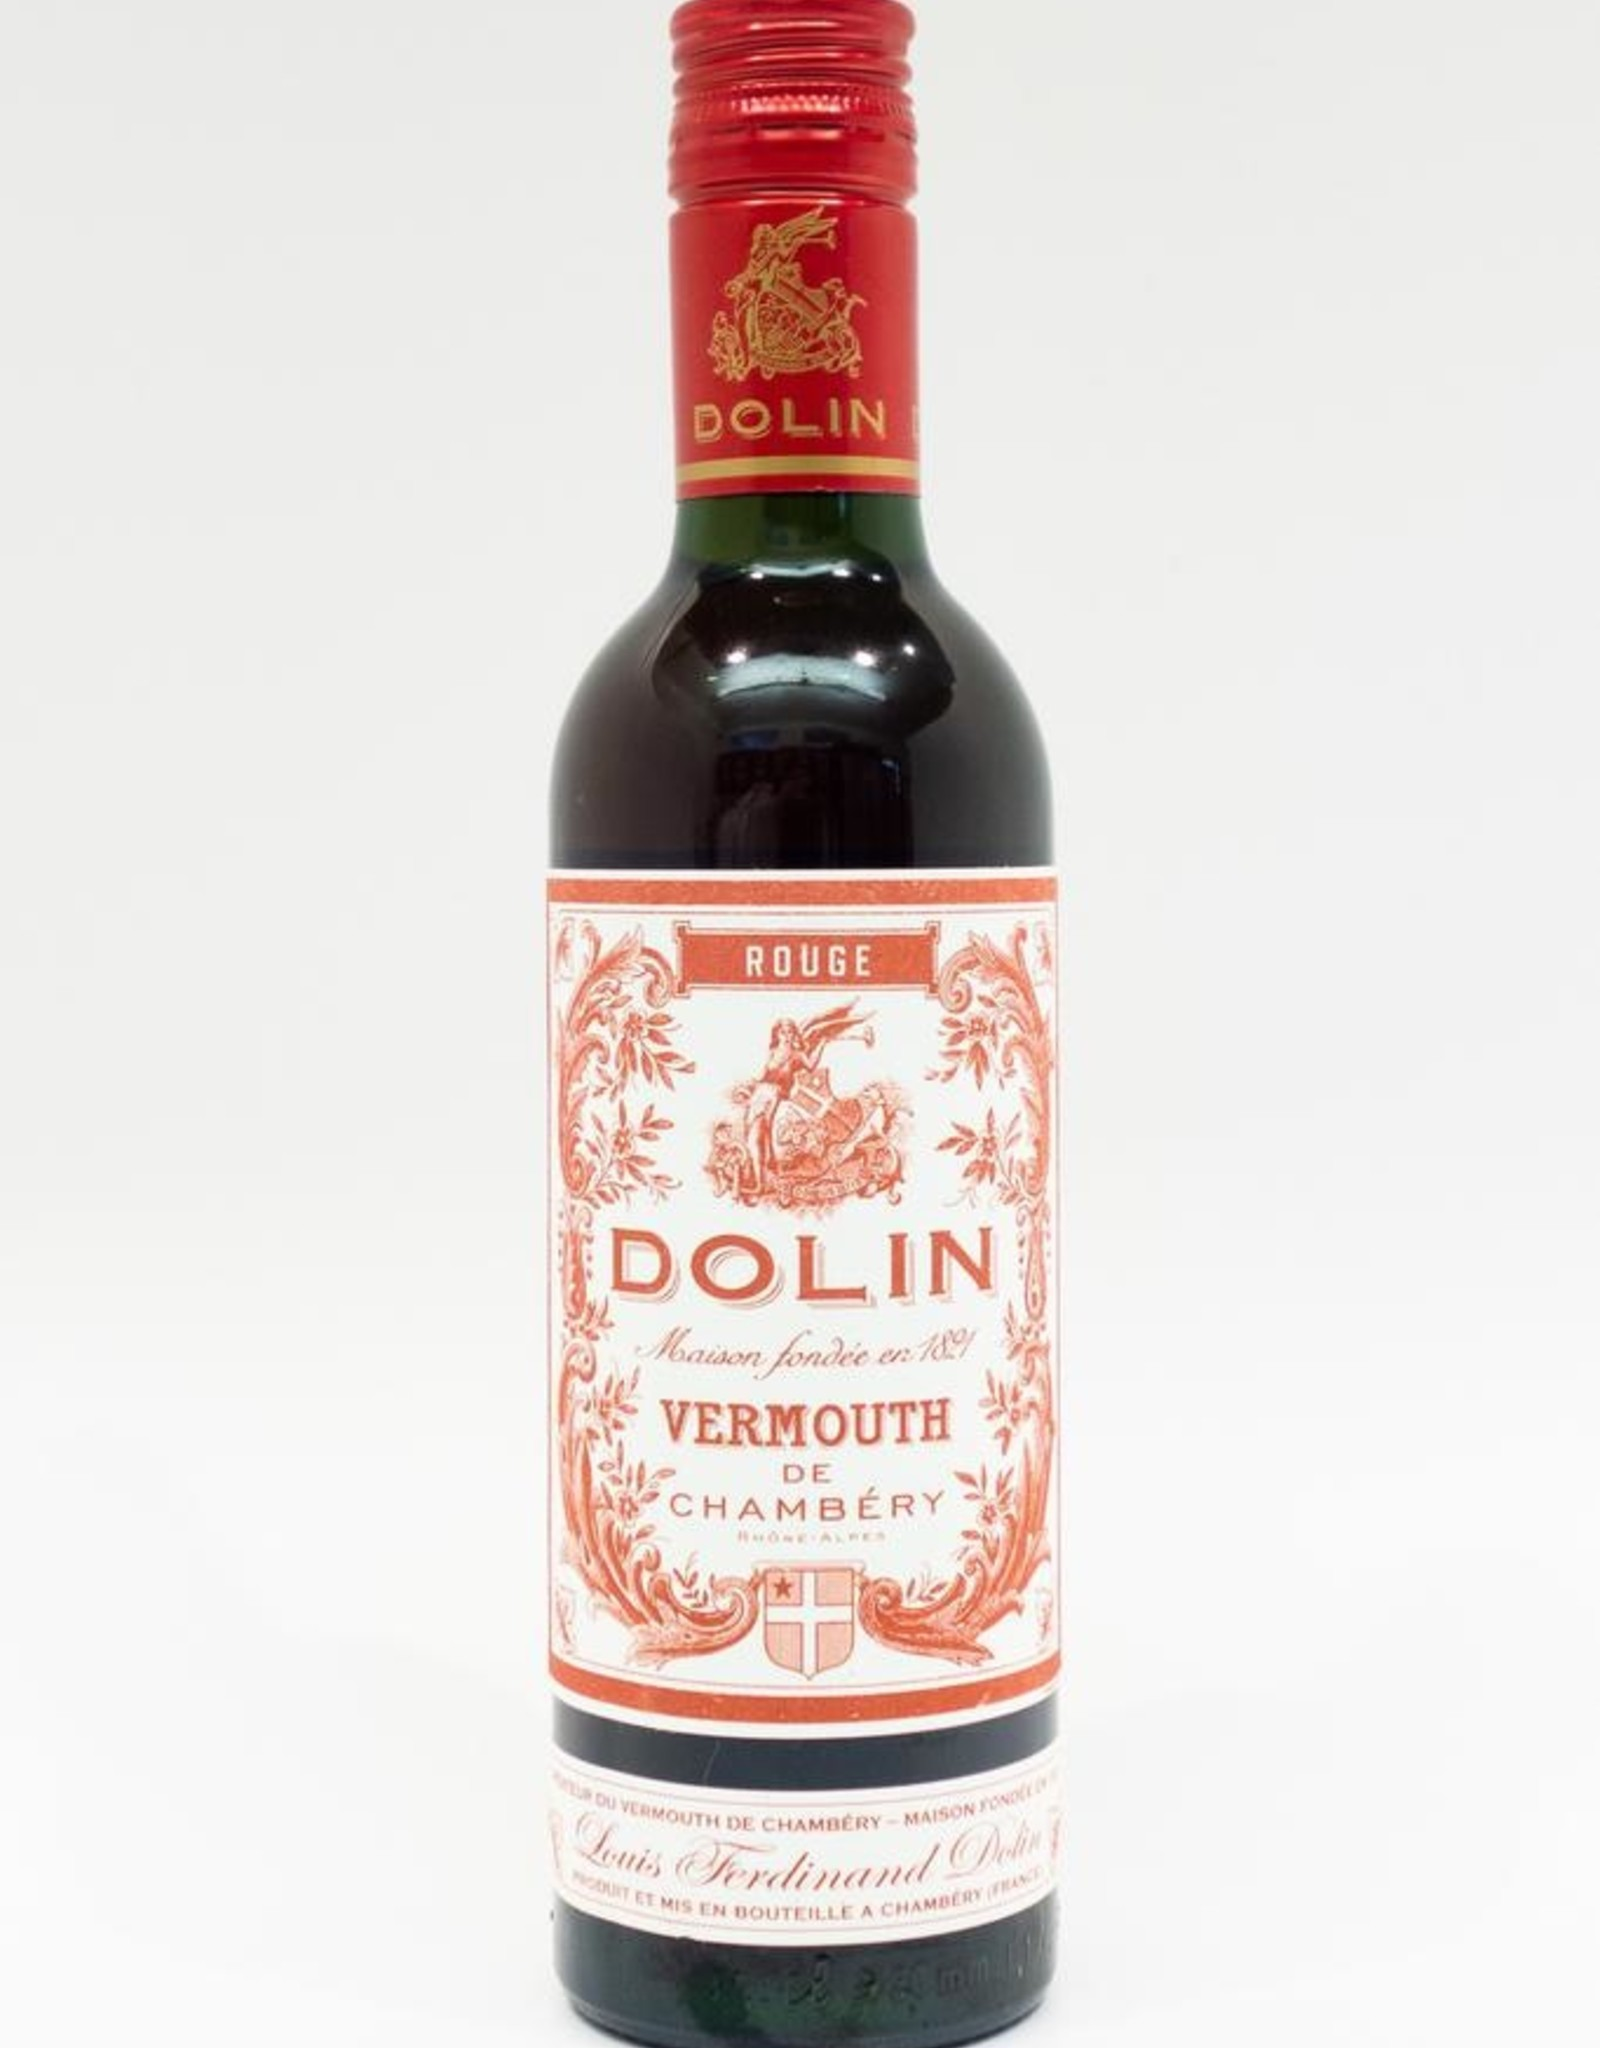 Wine-Aromatized-Vermouth Dolin Rouge Vermouth 375ml